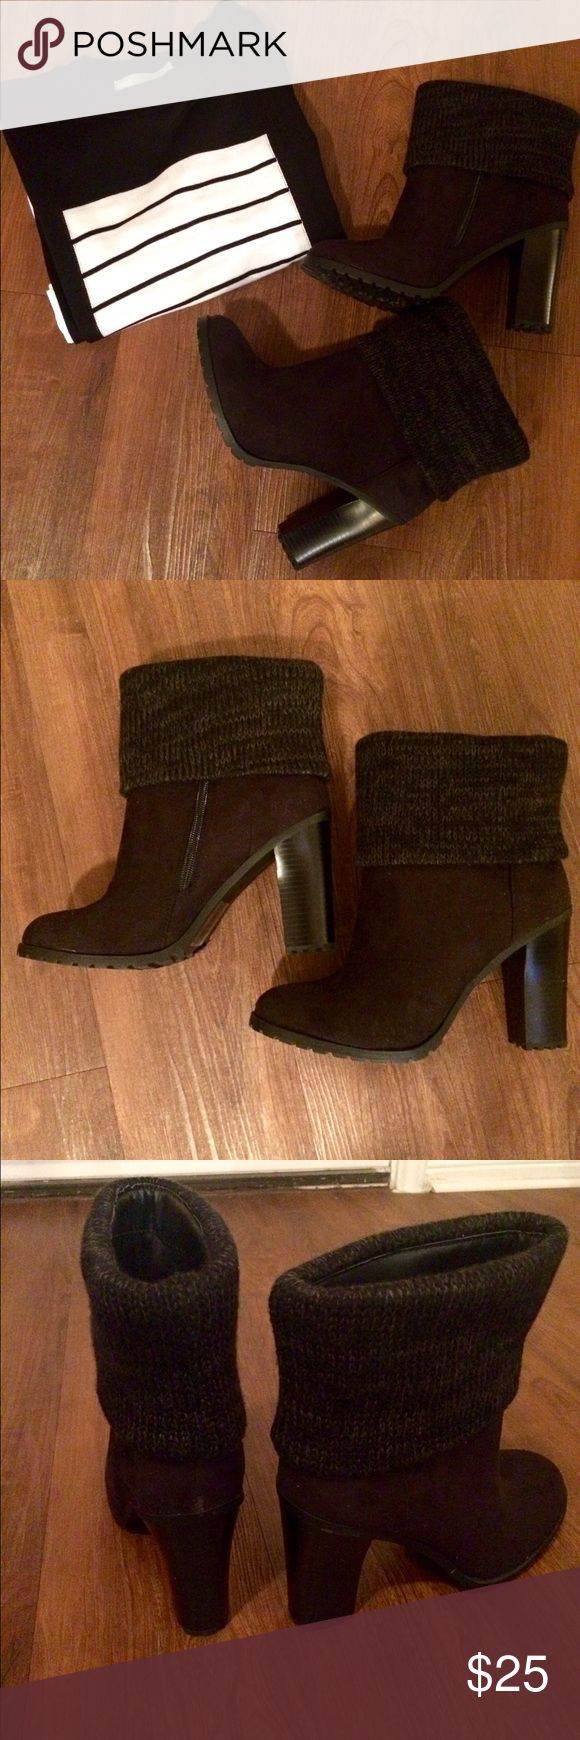 Jarae Sweater Booties (Leila Stone/Shoe Dazzle) Jarae Sweater Booties (Leila Stone for ShoeDazzle) in black. Cute and comfy bootie with unique sweater cuff step up the meaning of fall fashion. In perfect condition! Brand new, never worn! NWOT. Even has original size sticker on the bottom. JustFab Shoes Ankle Boots & Booties